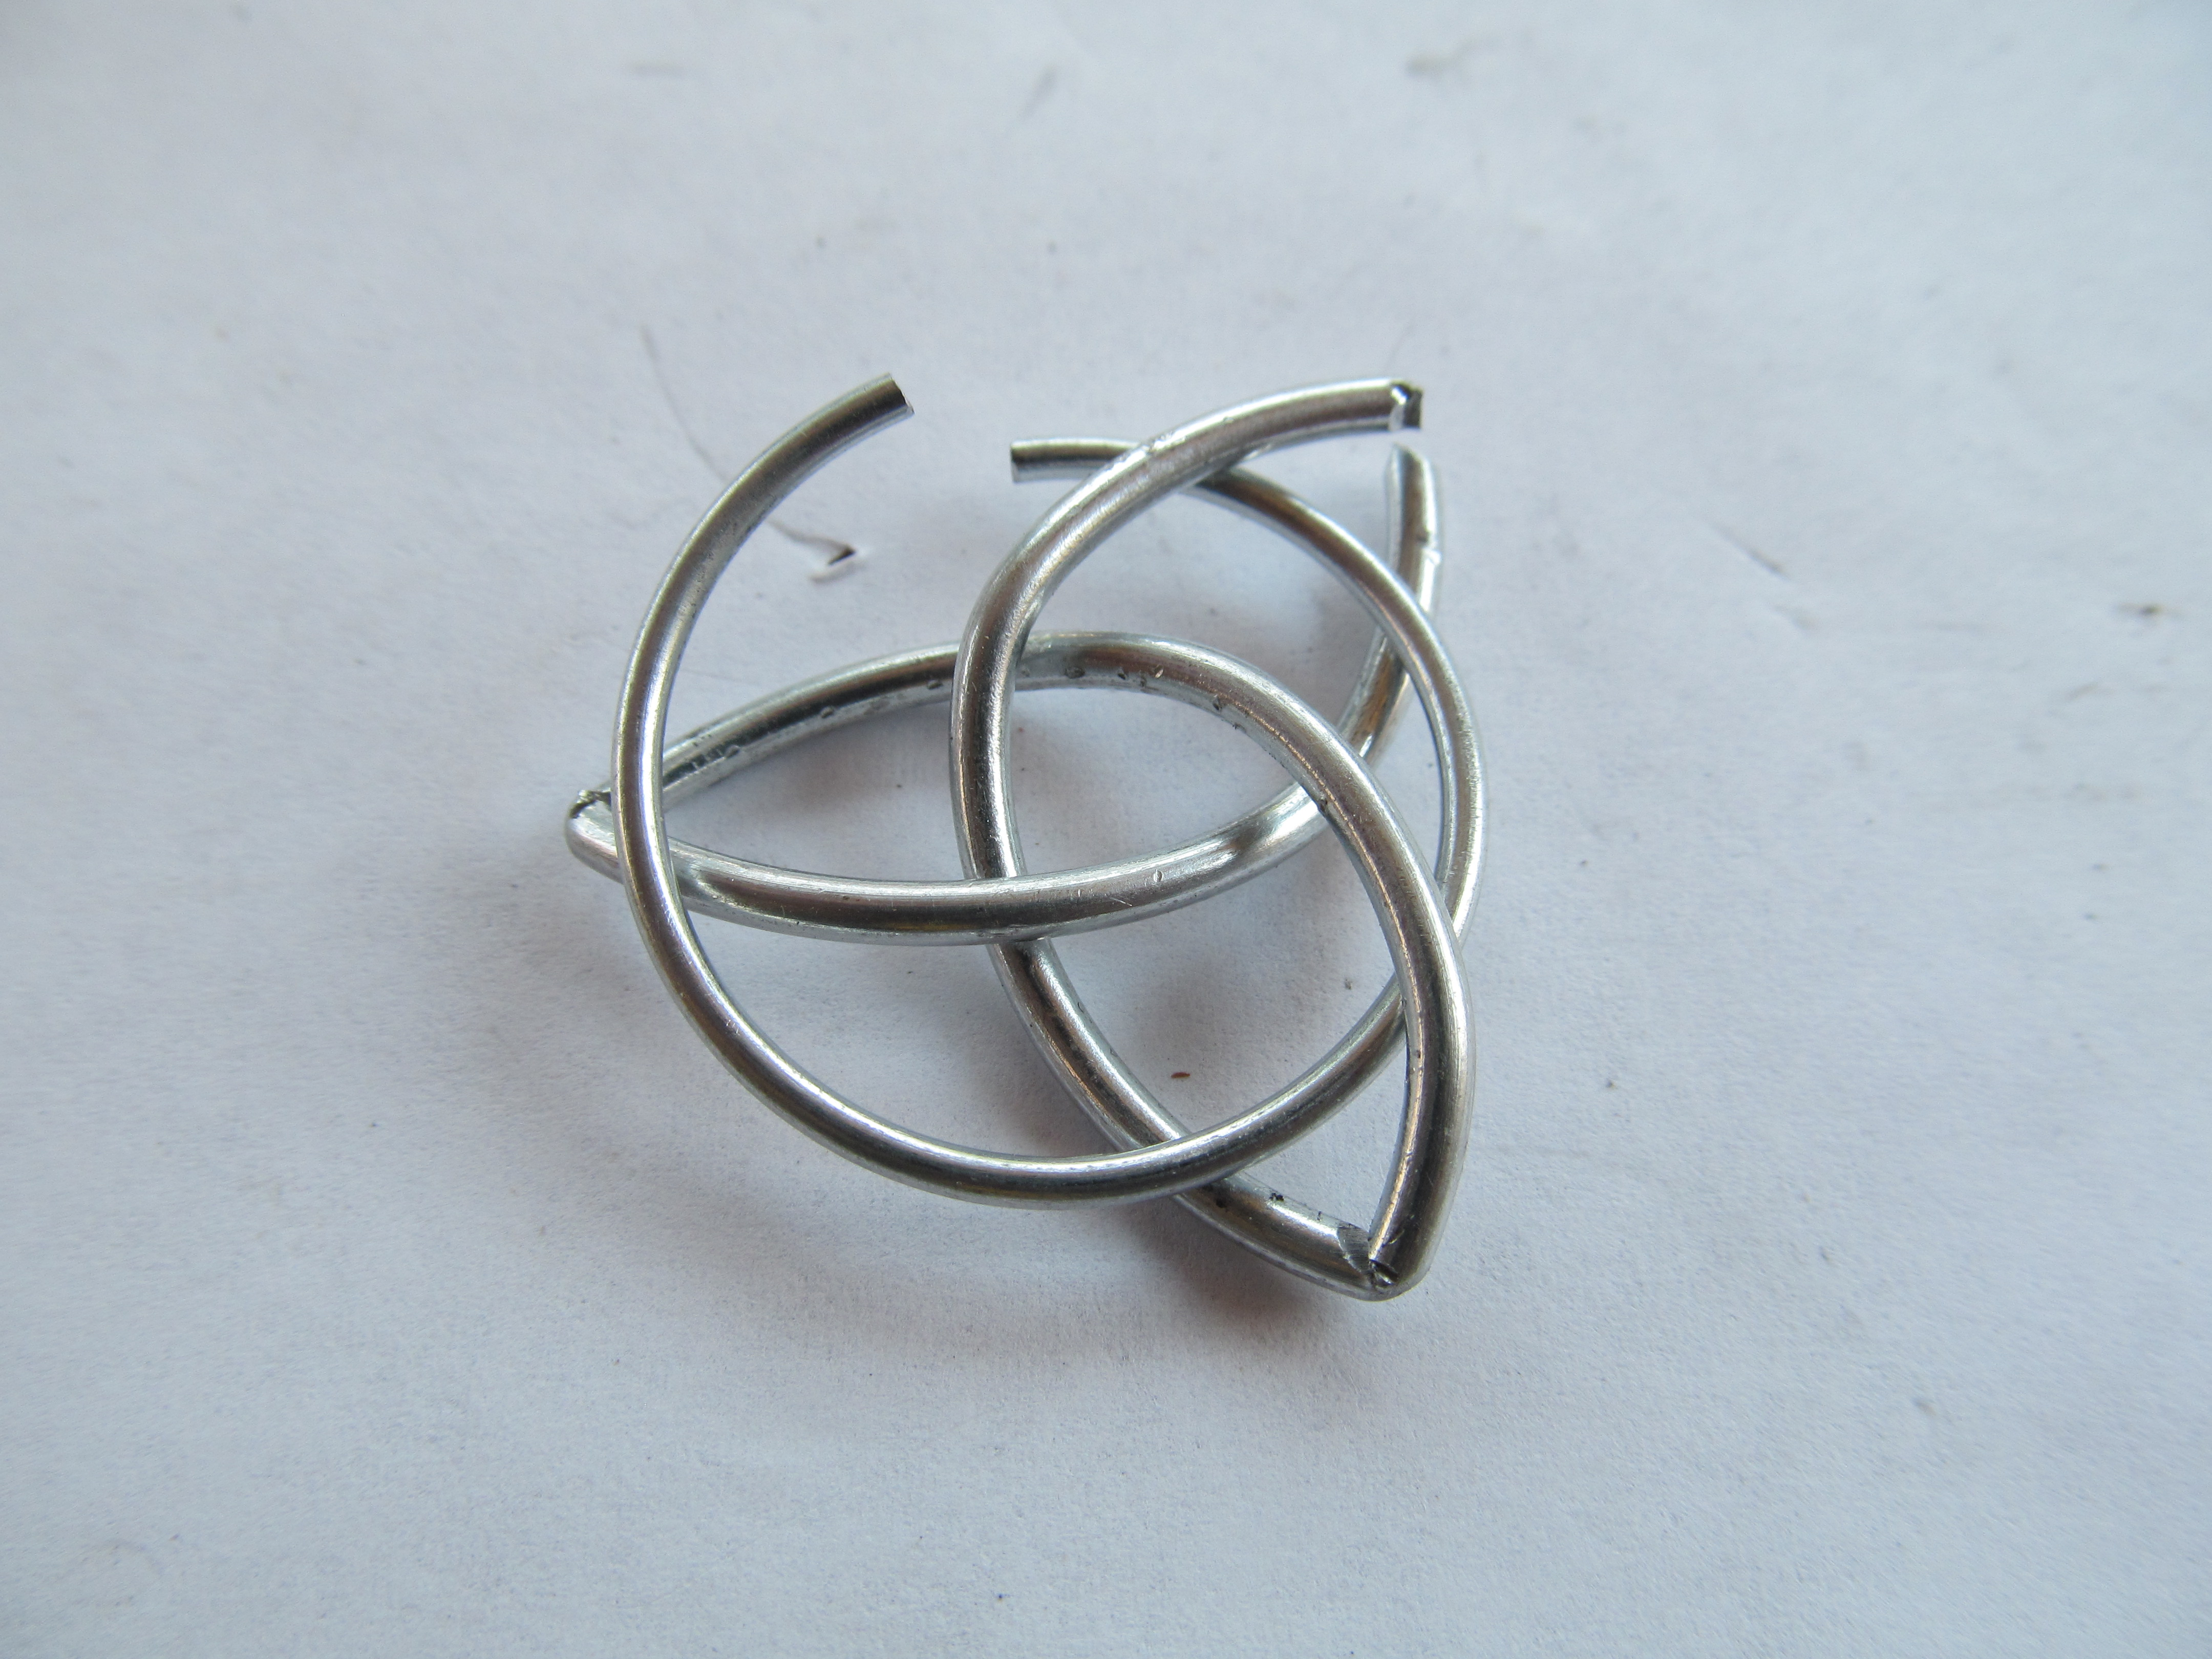 Celtic Knot Pendant: 6 Steps (with Pictures)